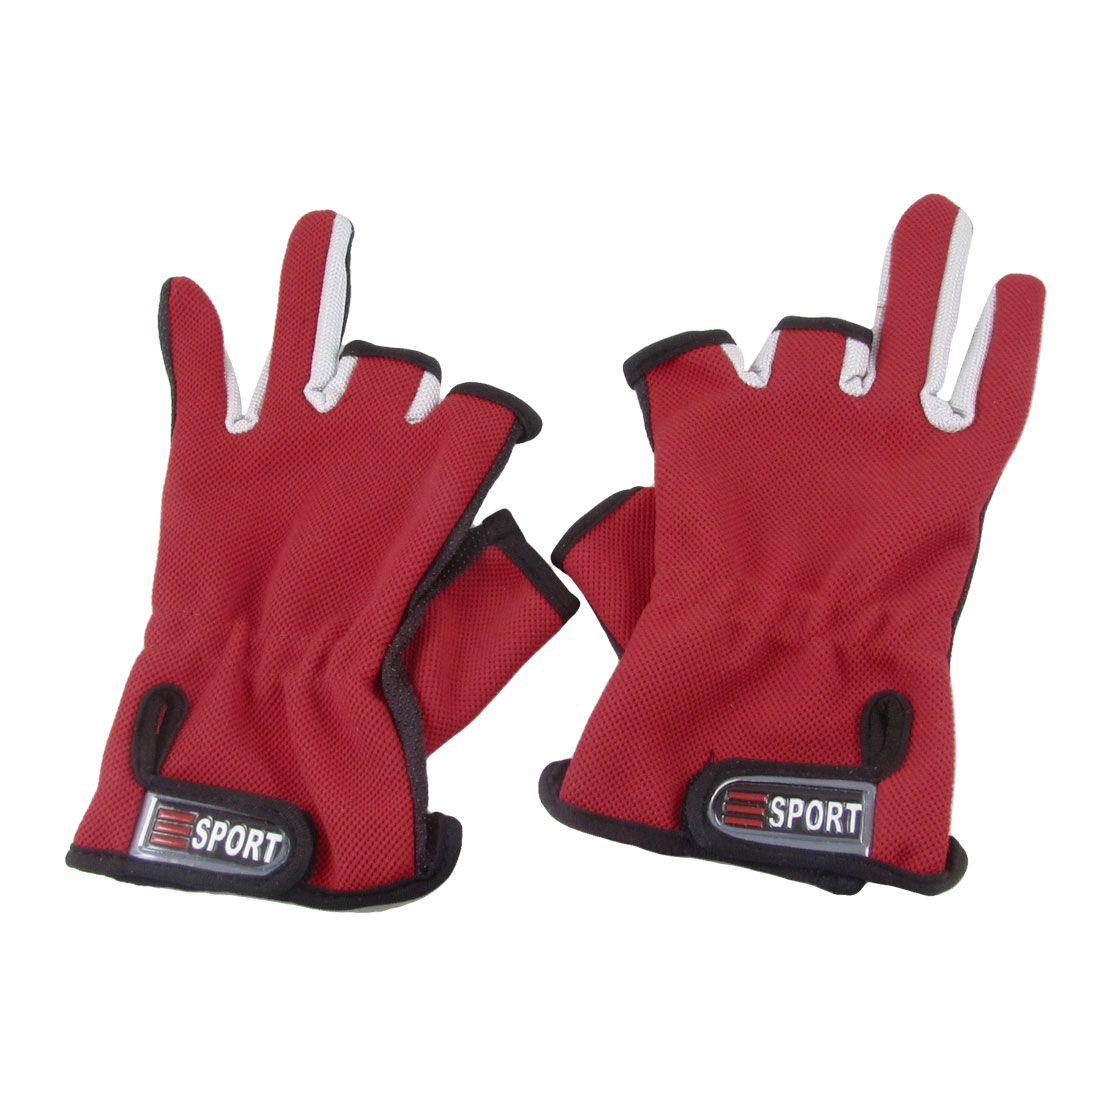 Pair Nylon Anti Slip Hand Fishing Two Full Fingers Gloves Three Tone